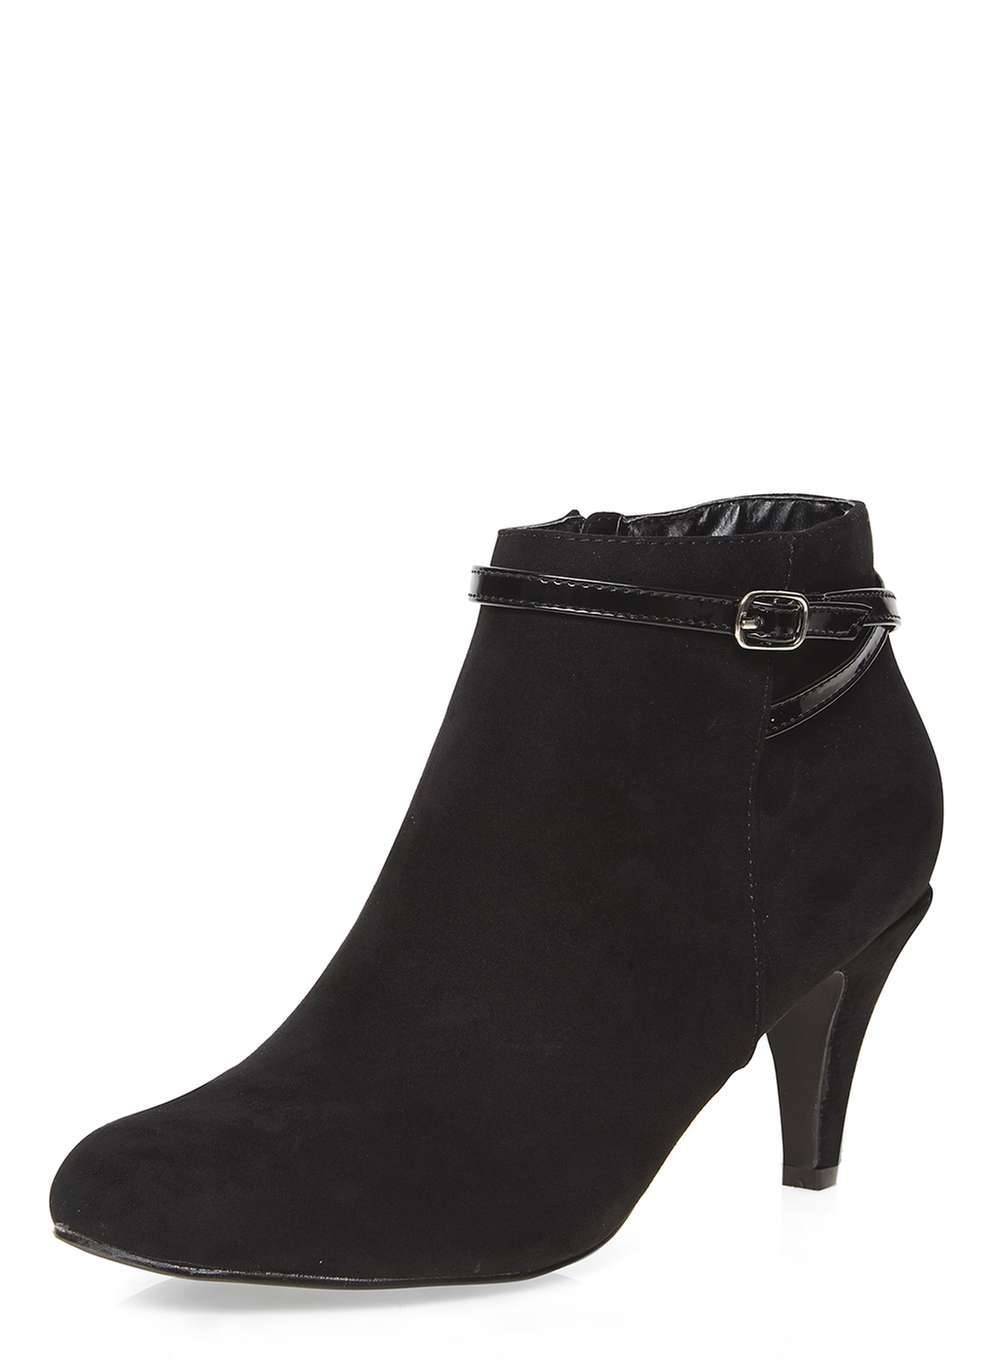 Womens Black 'alby' Buckle Boots Black - predominant colour: black; occasions: casual; material: faux leather; heel height: mid; heel: cone; toe: round toe; boot length: ankle boot; style: standard; finish: plain; pattern: plain; wardrobe: basic; season: a/w 2016